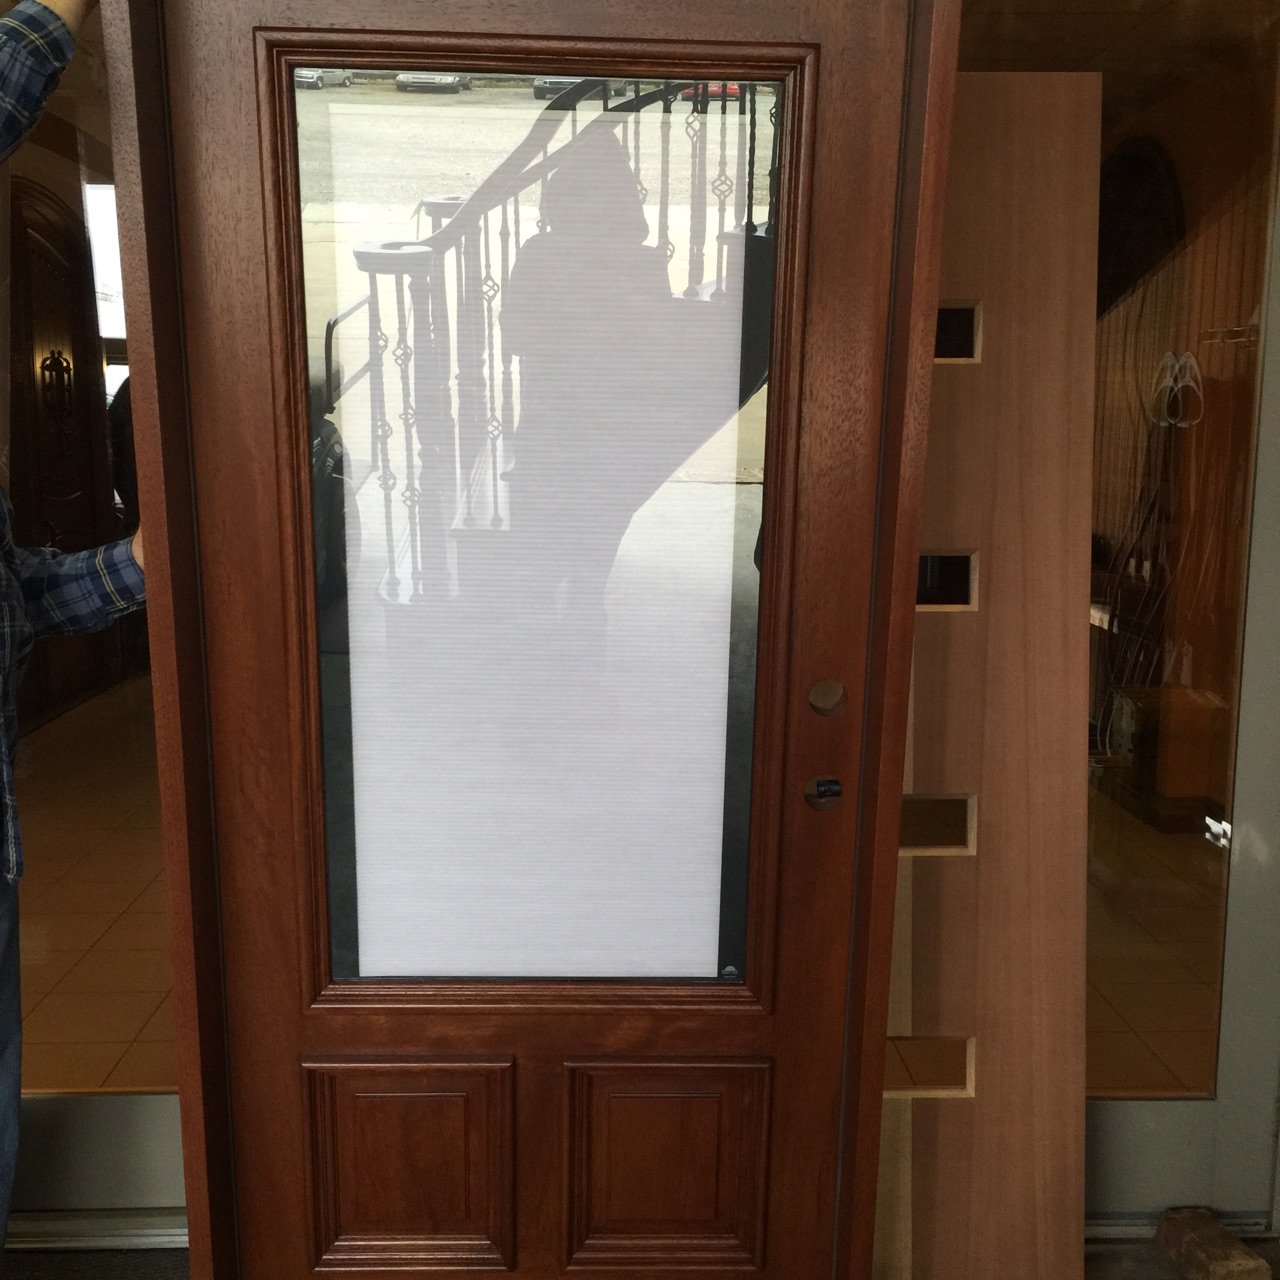 Exterior Doors With Blinds In Glass Blinds Between The